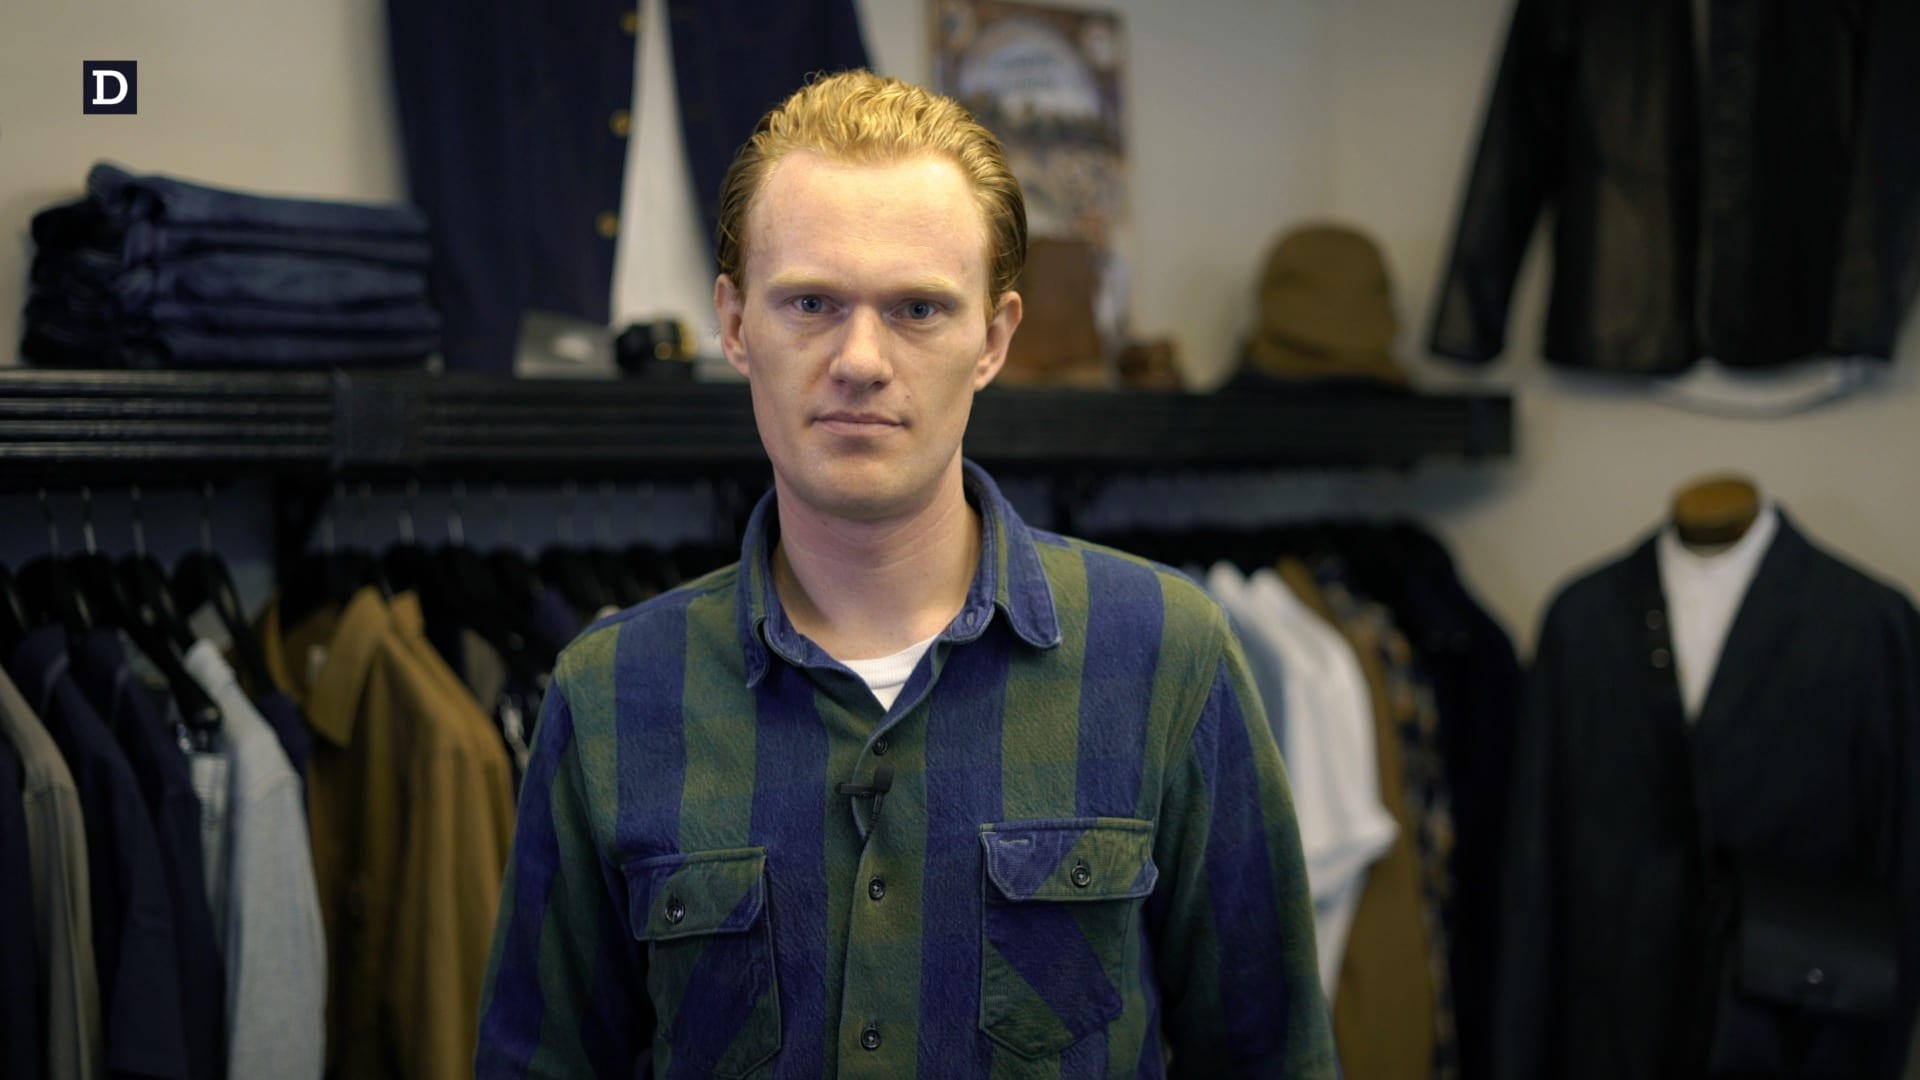 Thomas Stege Bojer in Denimhunters Academy Denim 101 course intro video